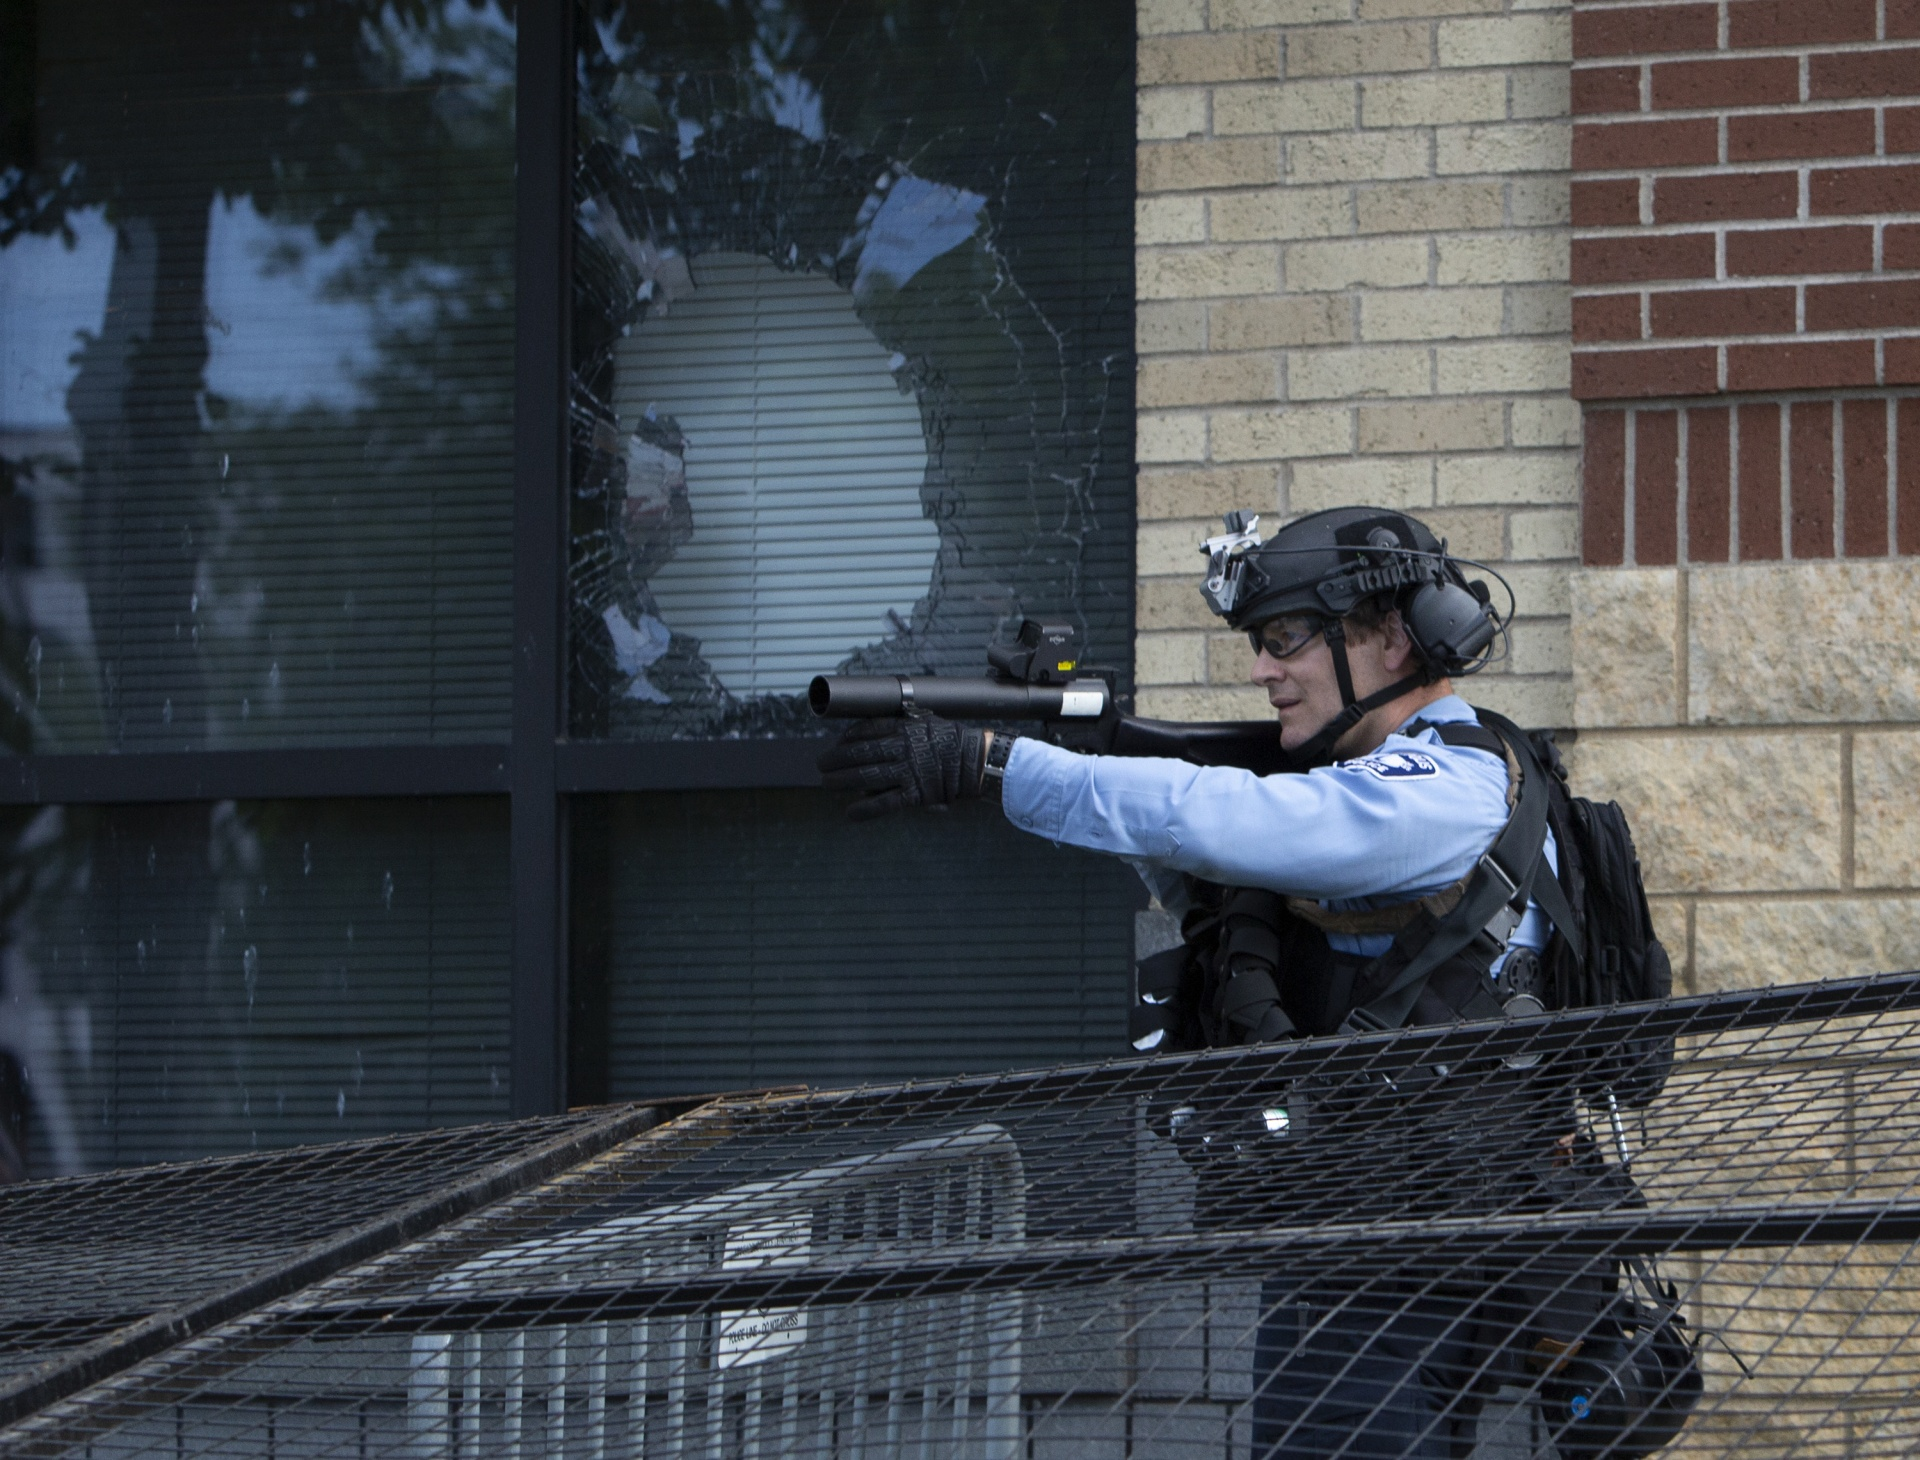 A Minneapolis police officer points a gun that fires projectiles outside the department's 3rd Precinct building